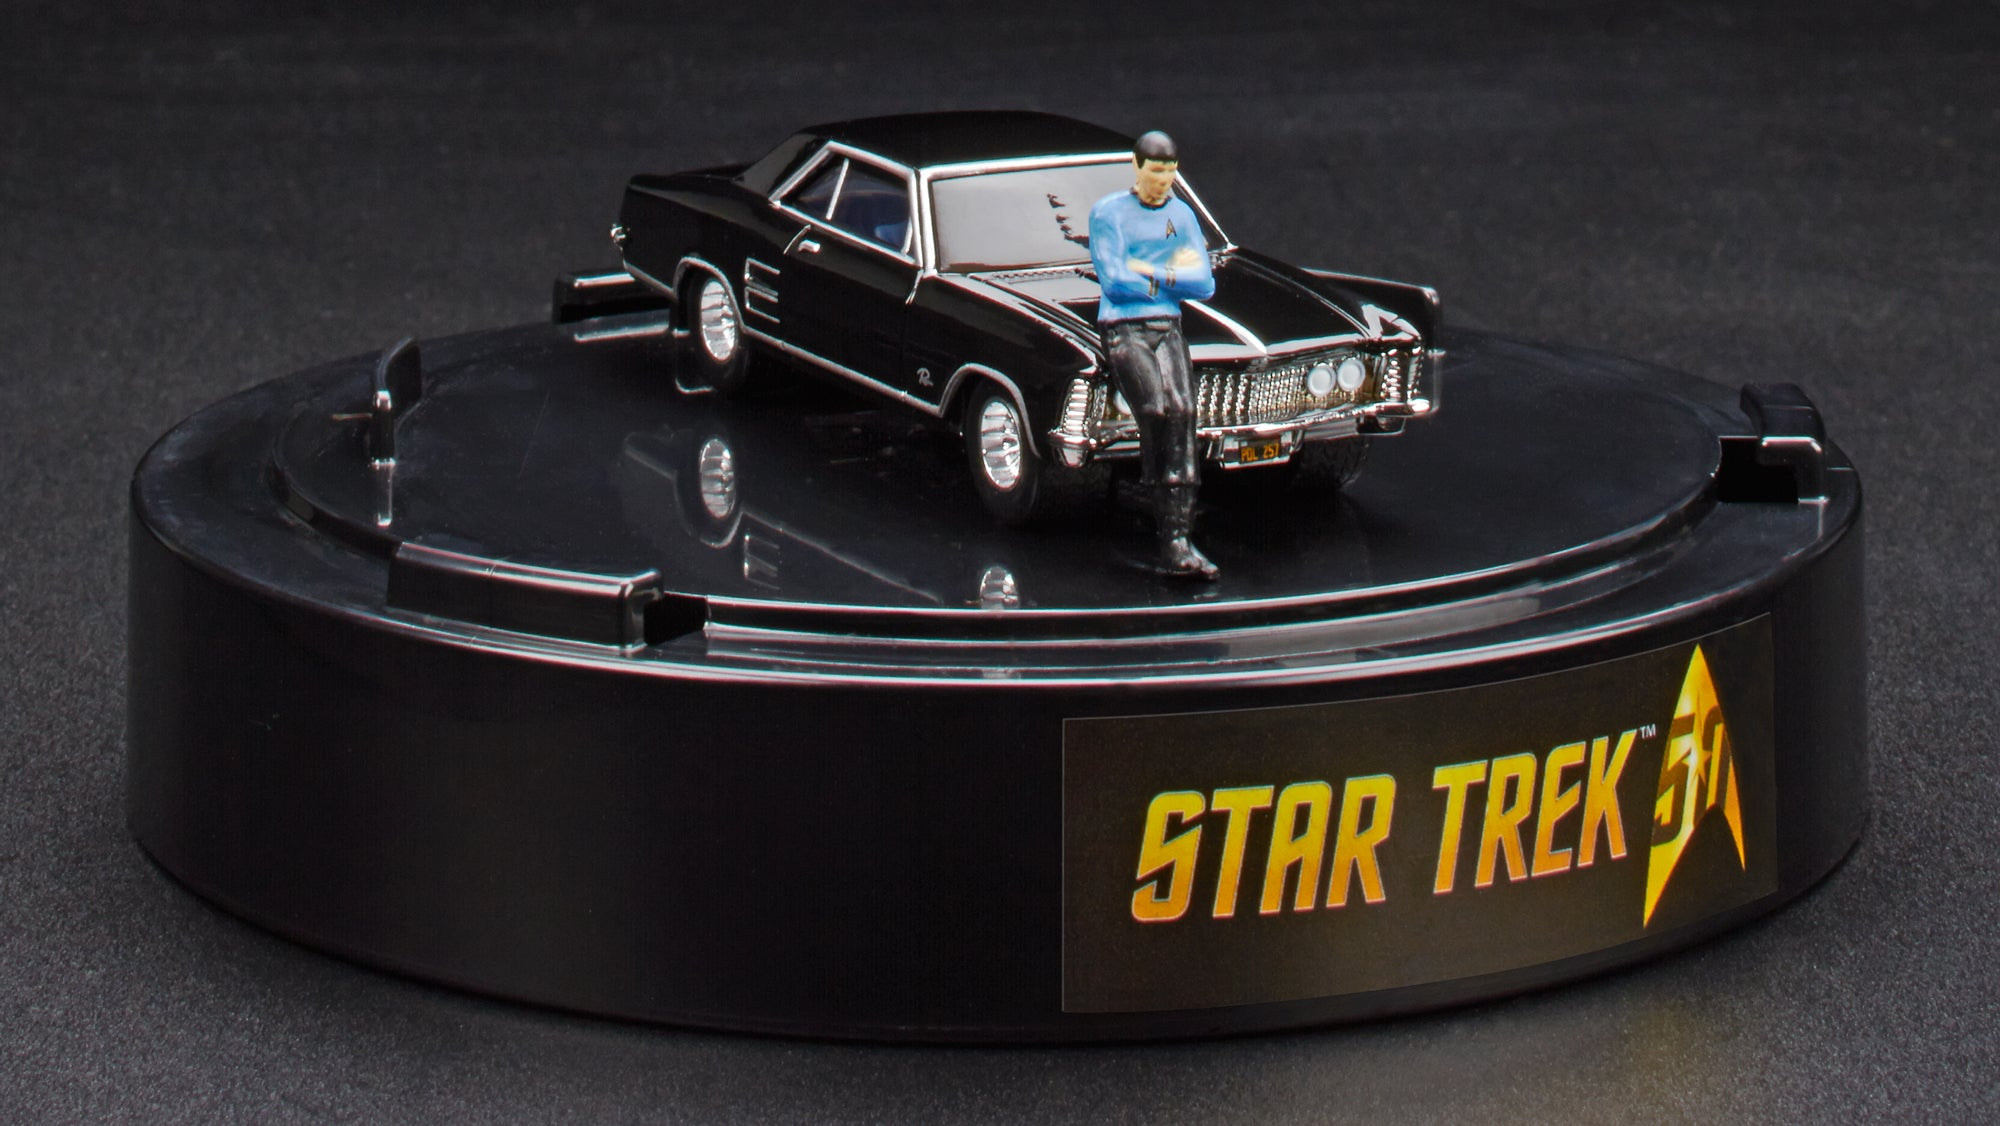 A Tiny Spock Leaning On A 1964 Buick Riviera Is The Best Hot Wheels Car Ever